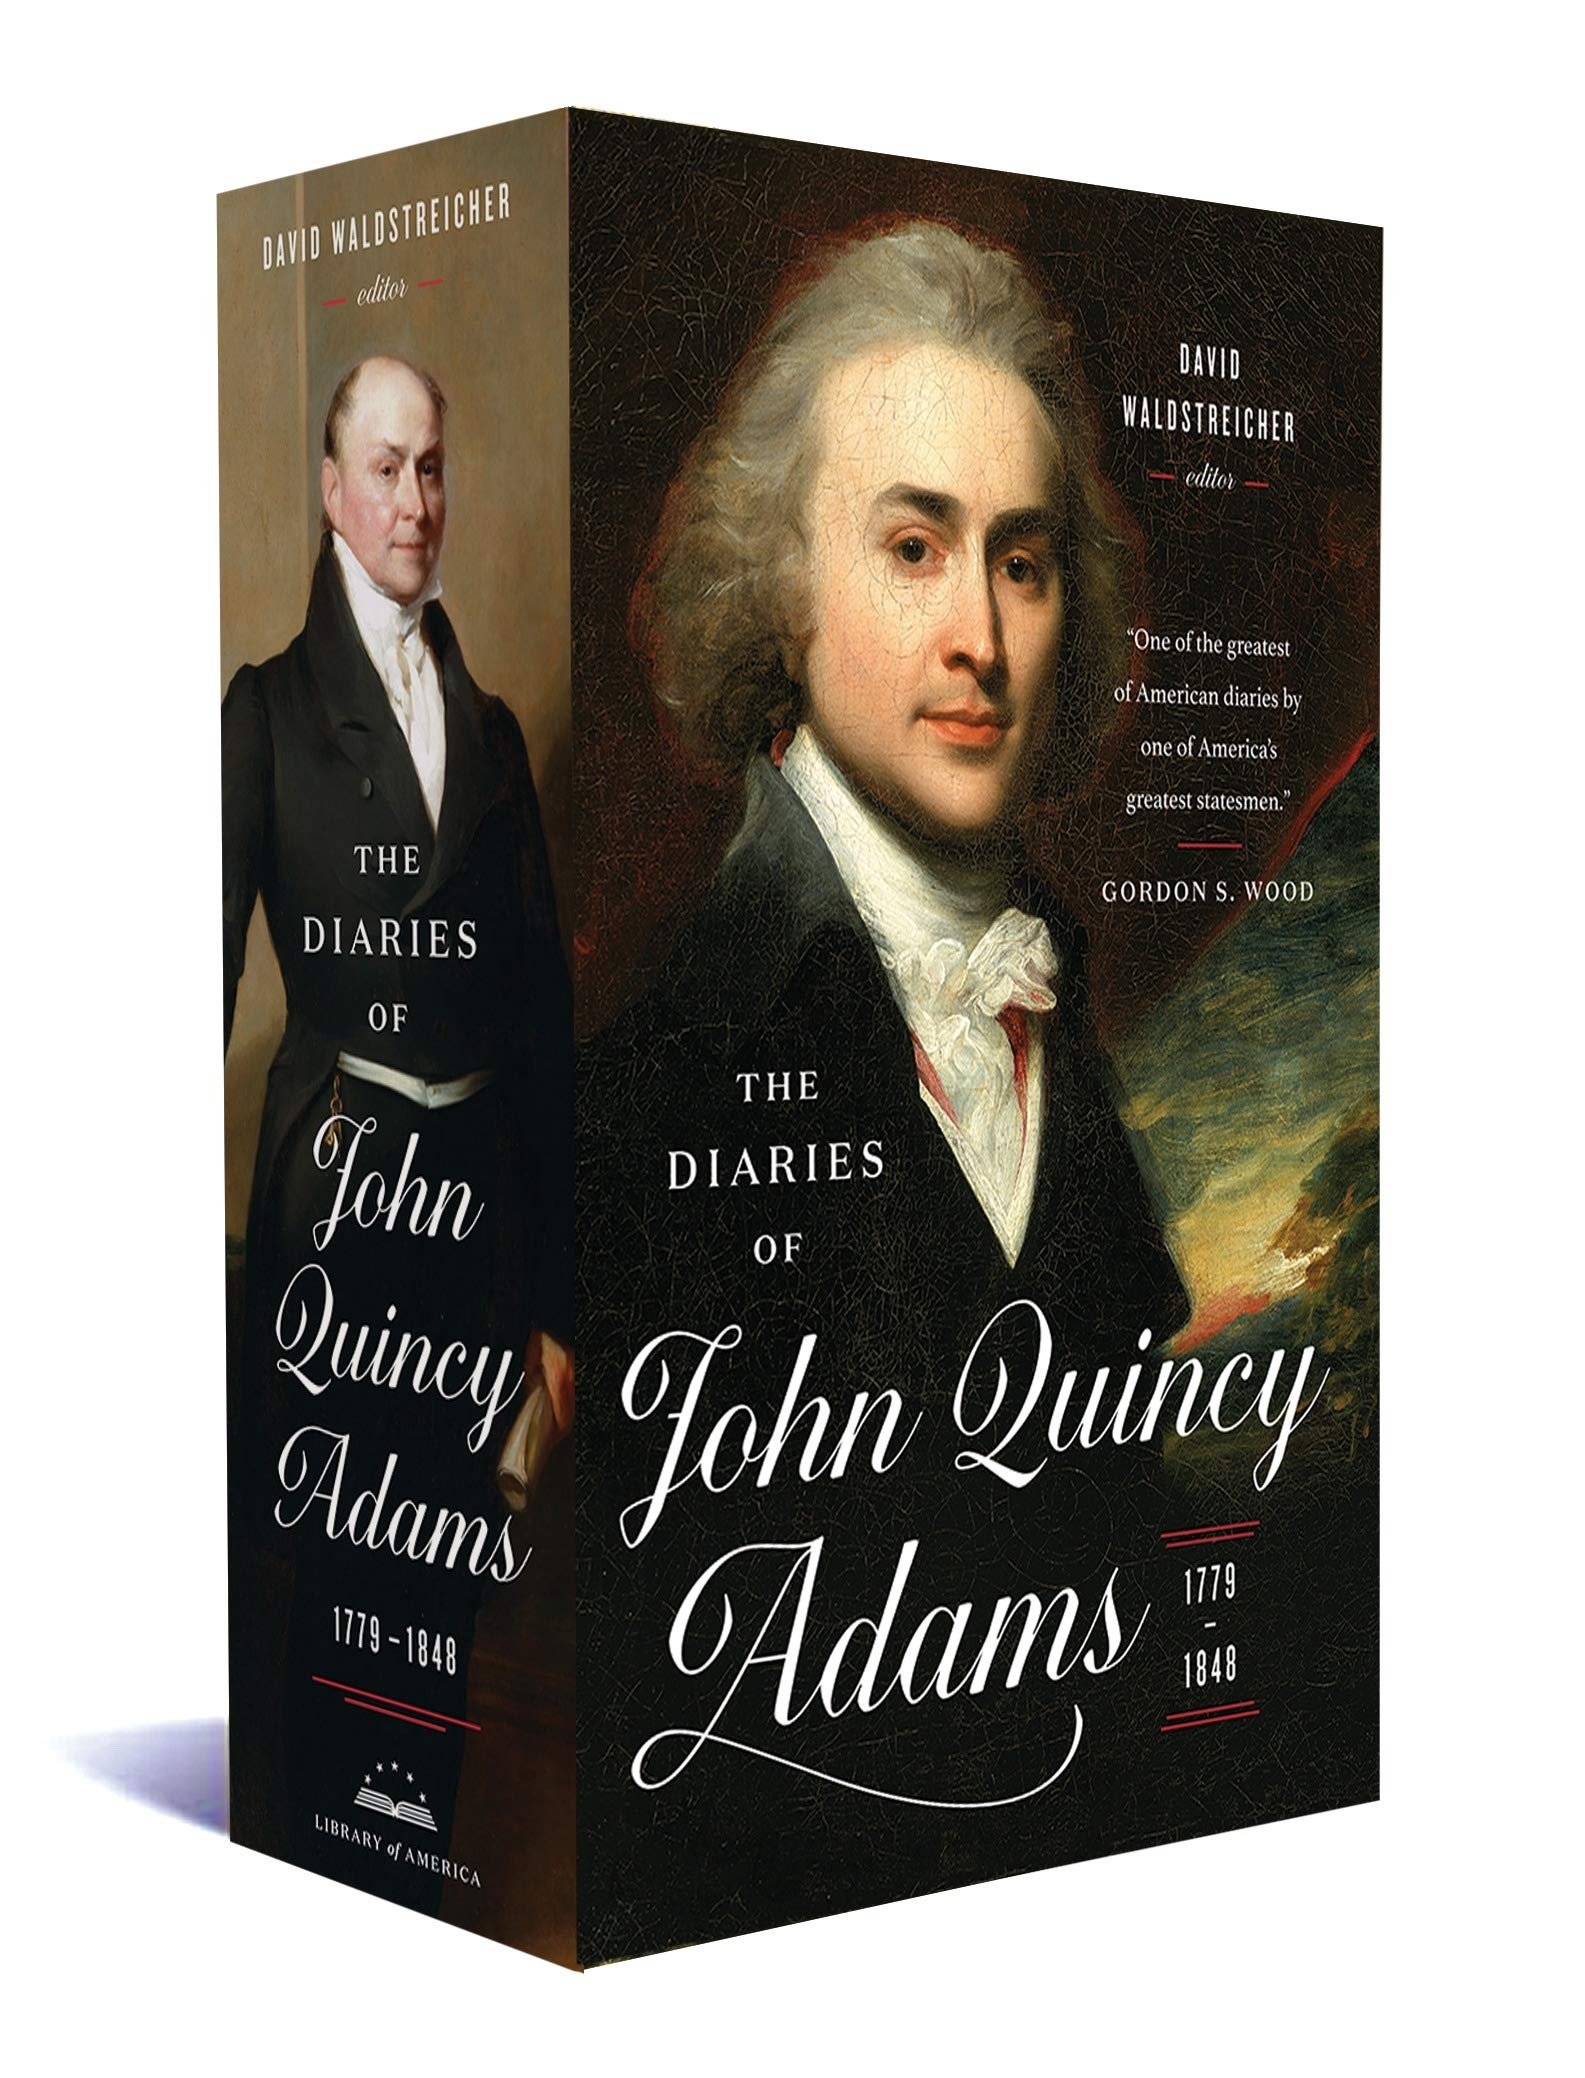 The Diaries of John Quincy Adams 1779-1848: A Library of America Boxed Set by Library of America